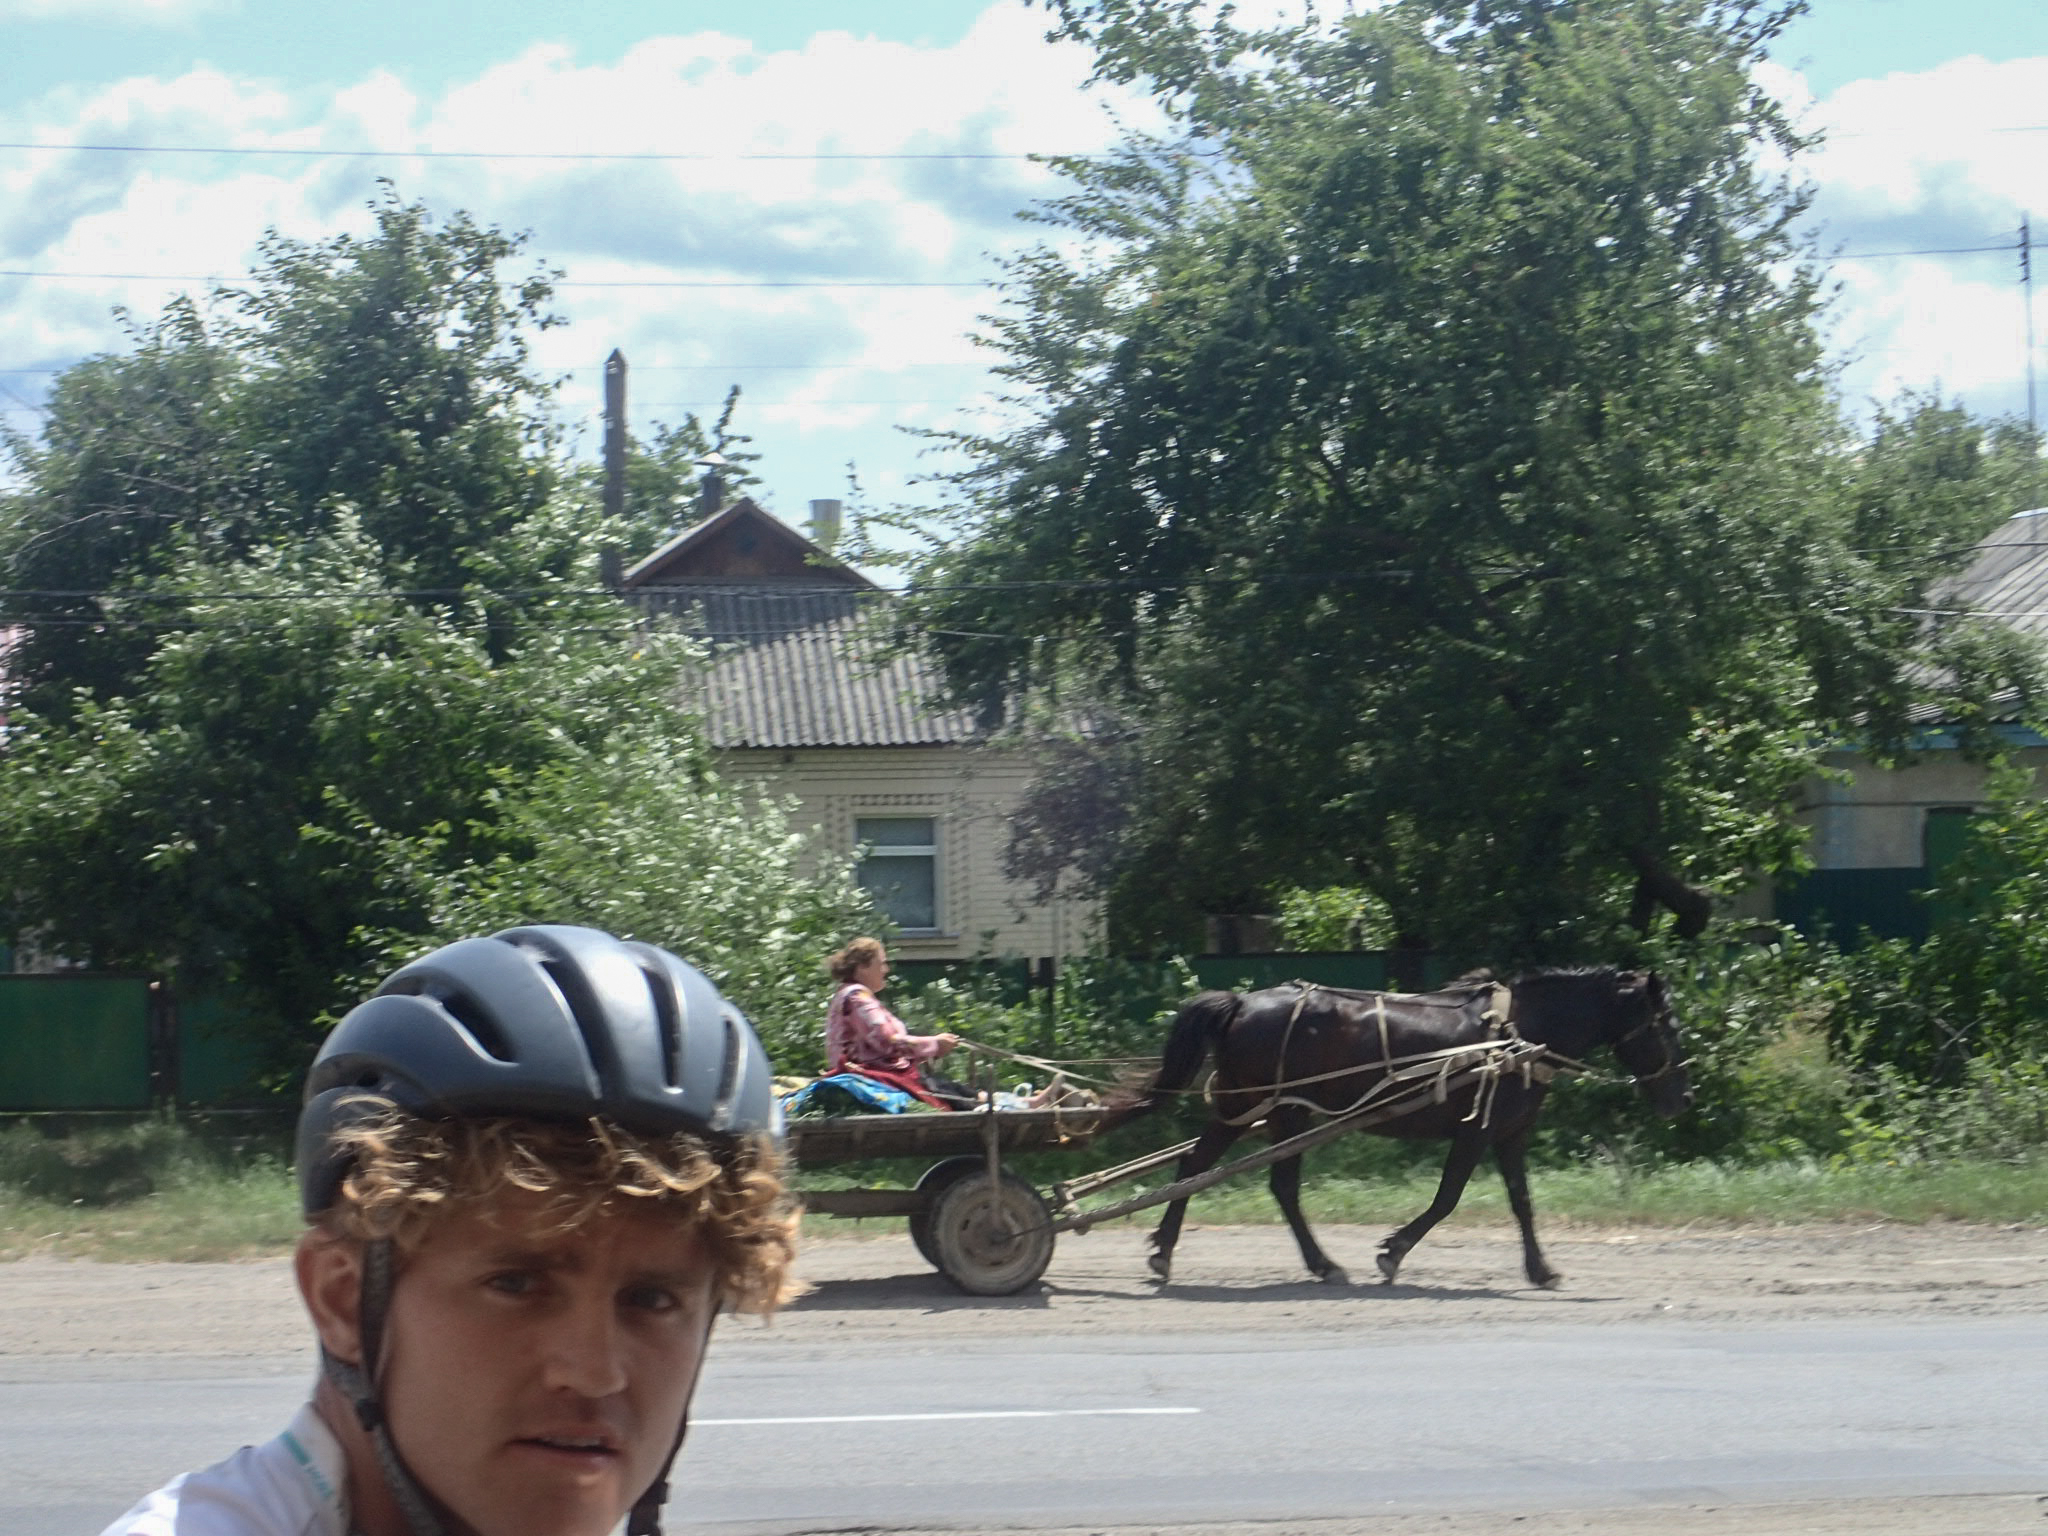 Linford, thinking a horse and cart might be a better option